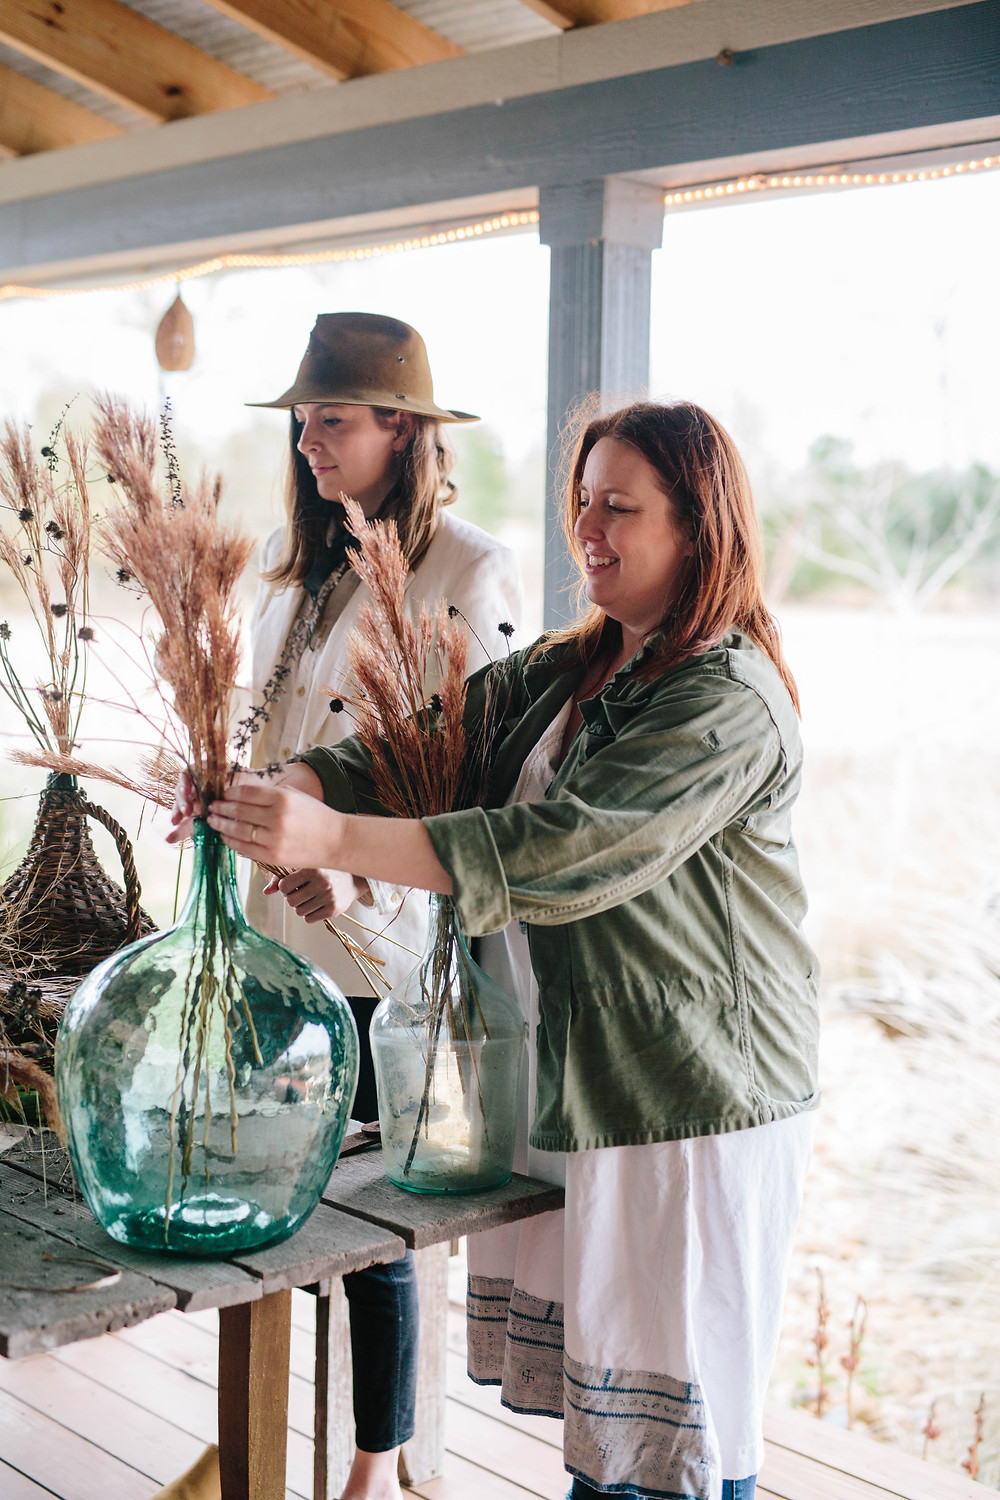 sisters in law rhoda and anna founders of loot rentals styling an outdoor display